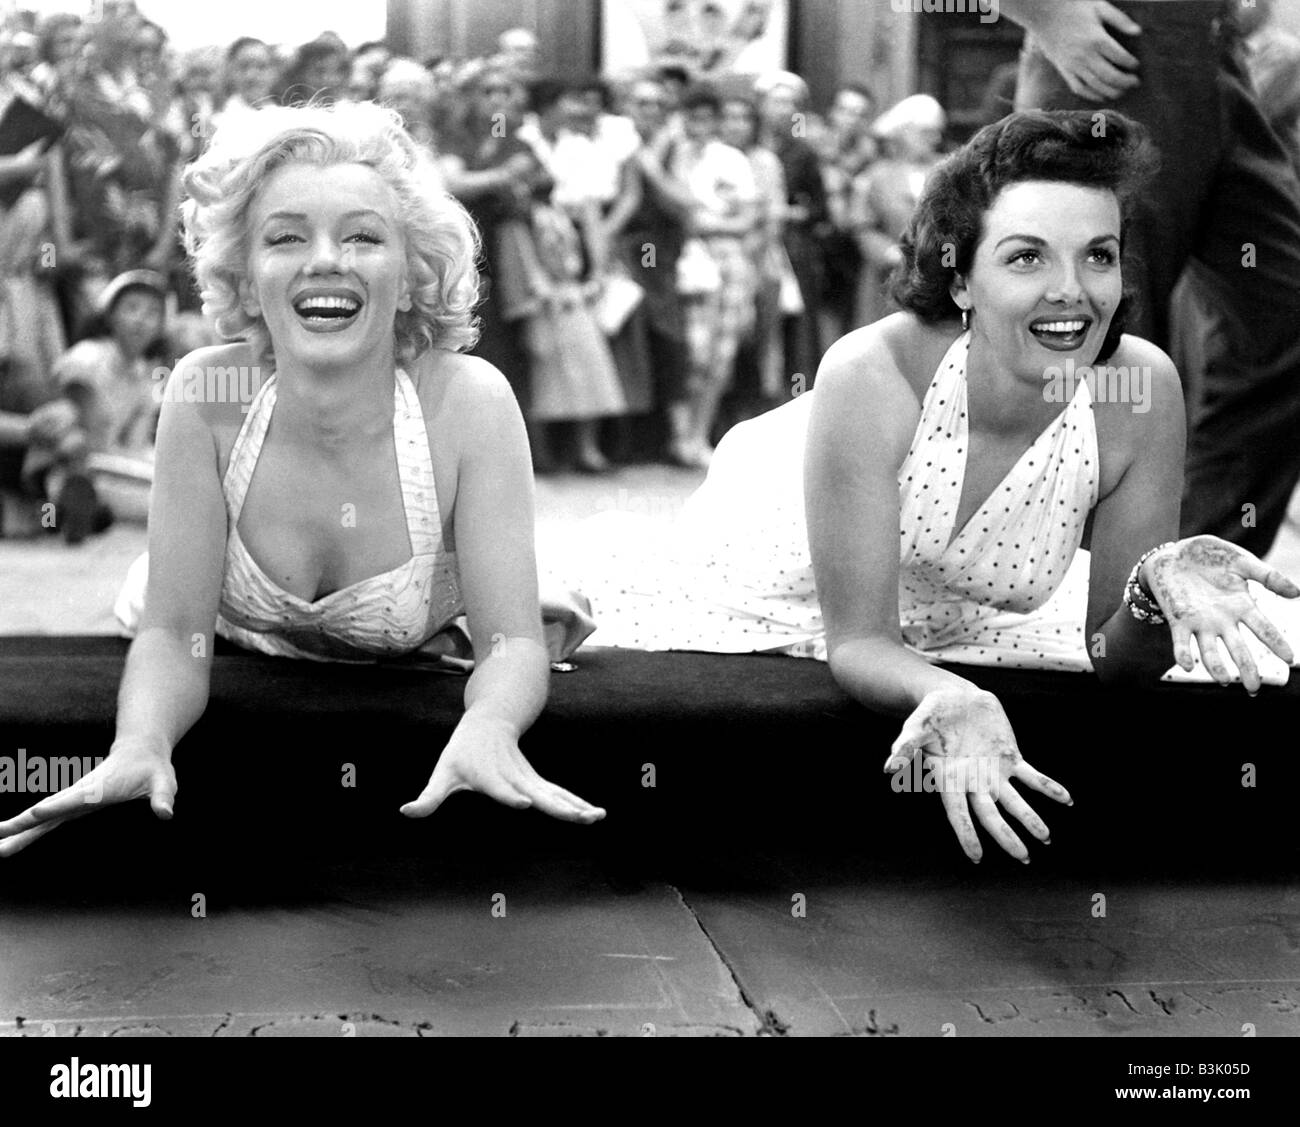 MARILYN MONROE a sinistra e Jane Russell lasciare loro handprints a Graumann's Chinese Theatre Hollywood nel 1953 Foto Stock